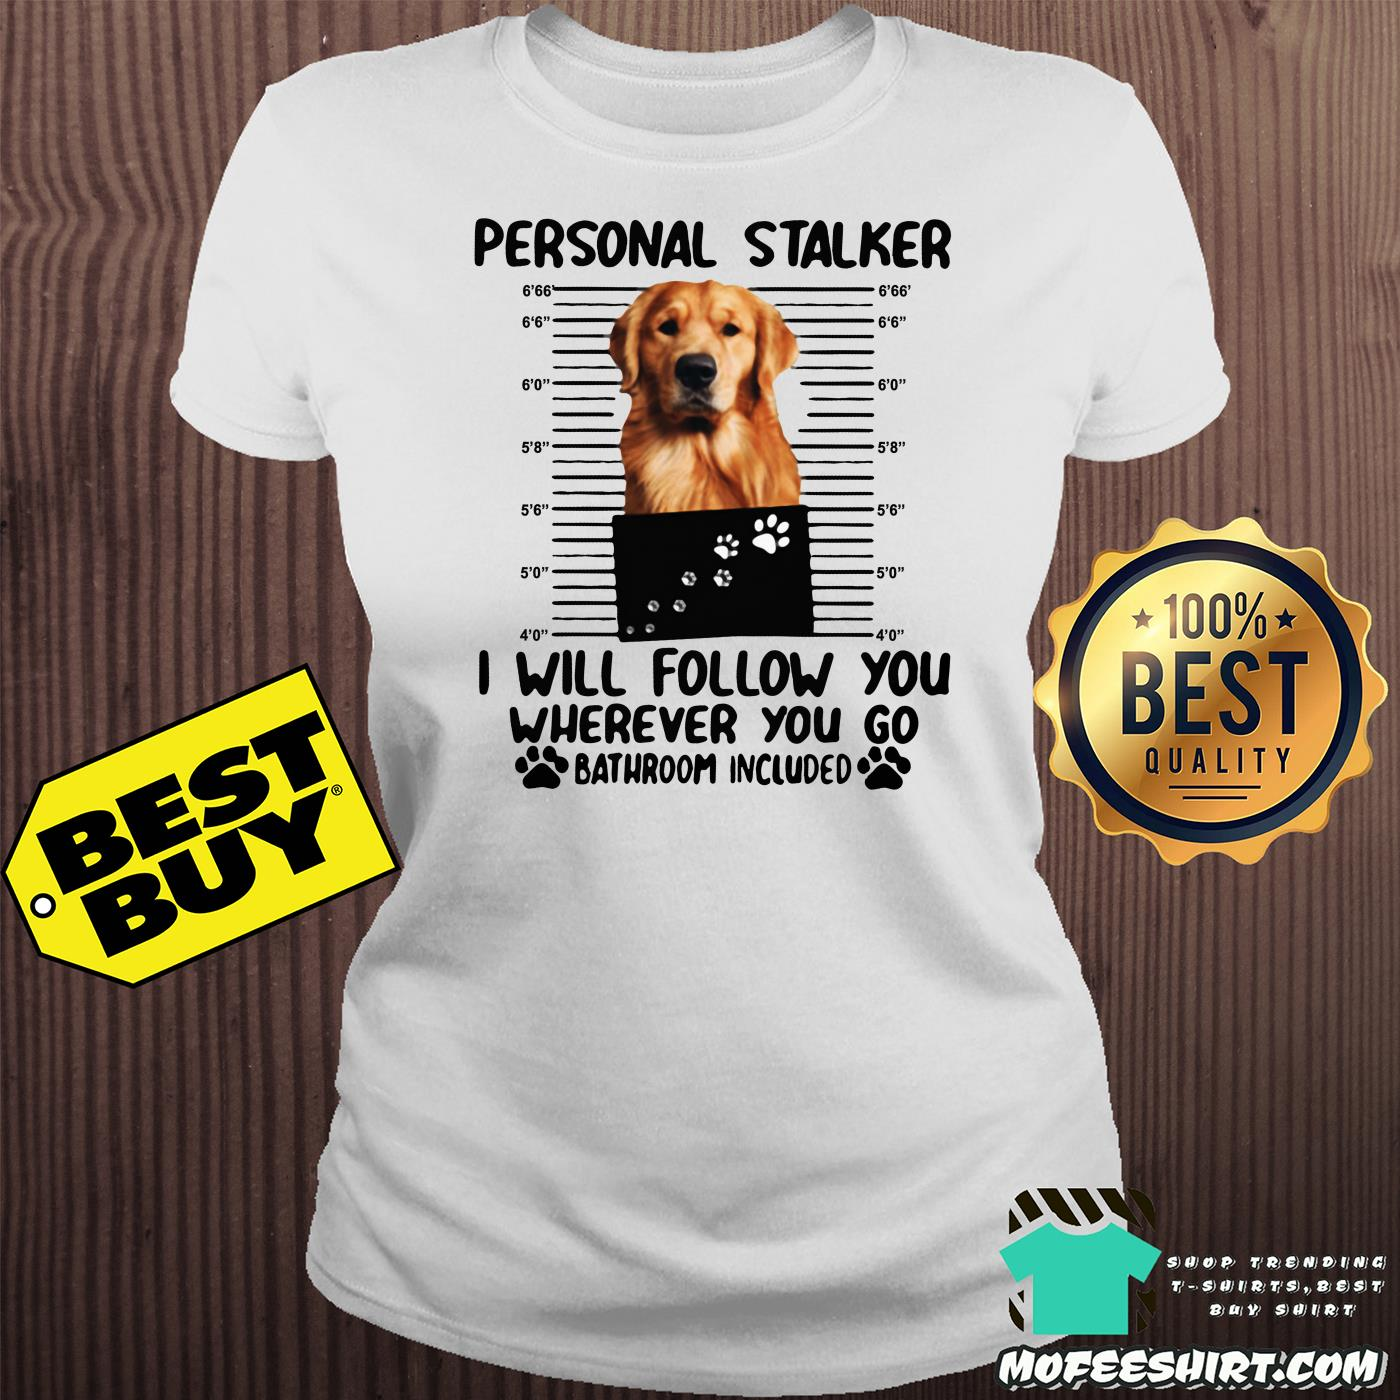 golden personal stalker i will follow you wherever you go bathroom included ladies tee - Golden Personal Stalker I Will Follow You Wherever You Go Bathroom Included shirt